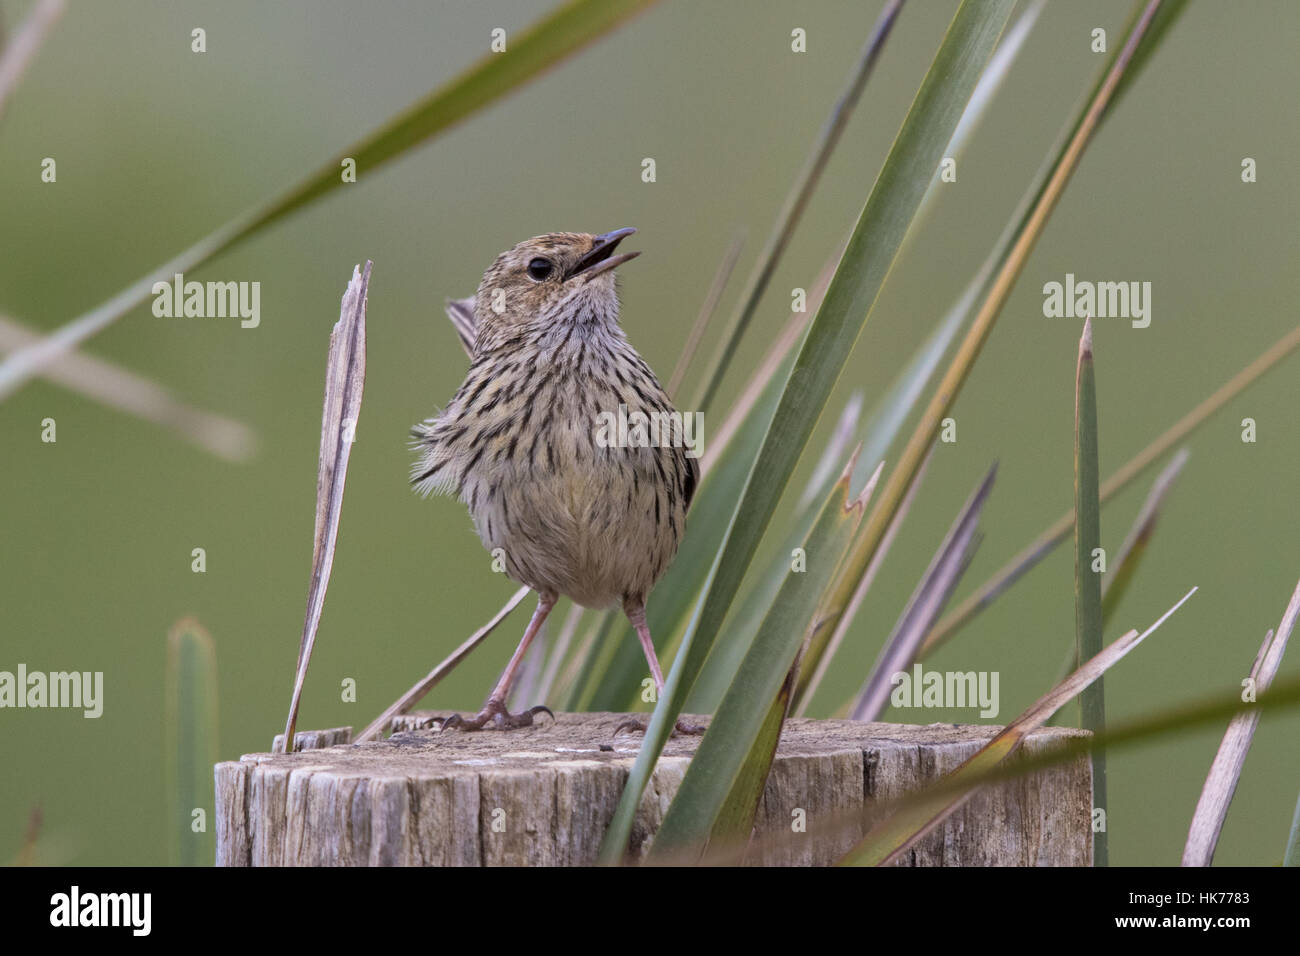 Striated Fieldwren (Calamanthus fuliginosus) singing from the top of a fencepost on a windy day - Stock Image